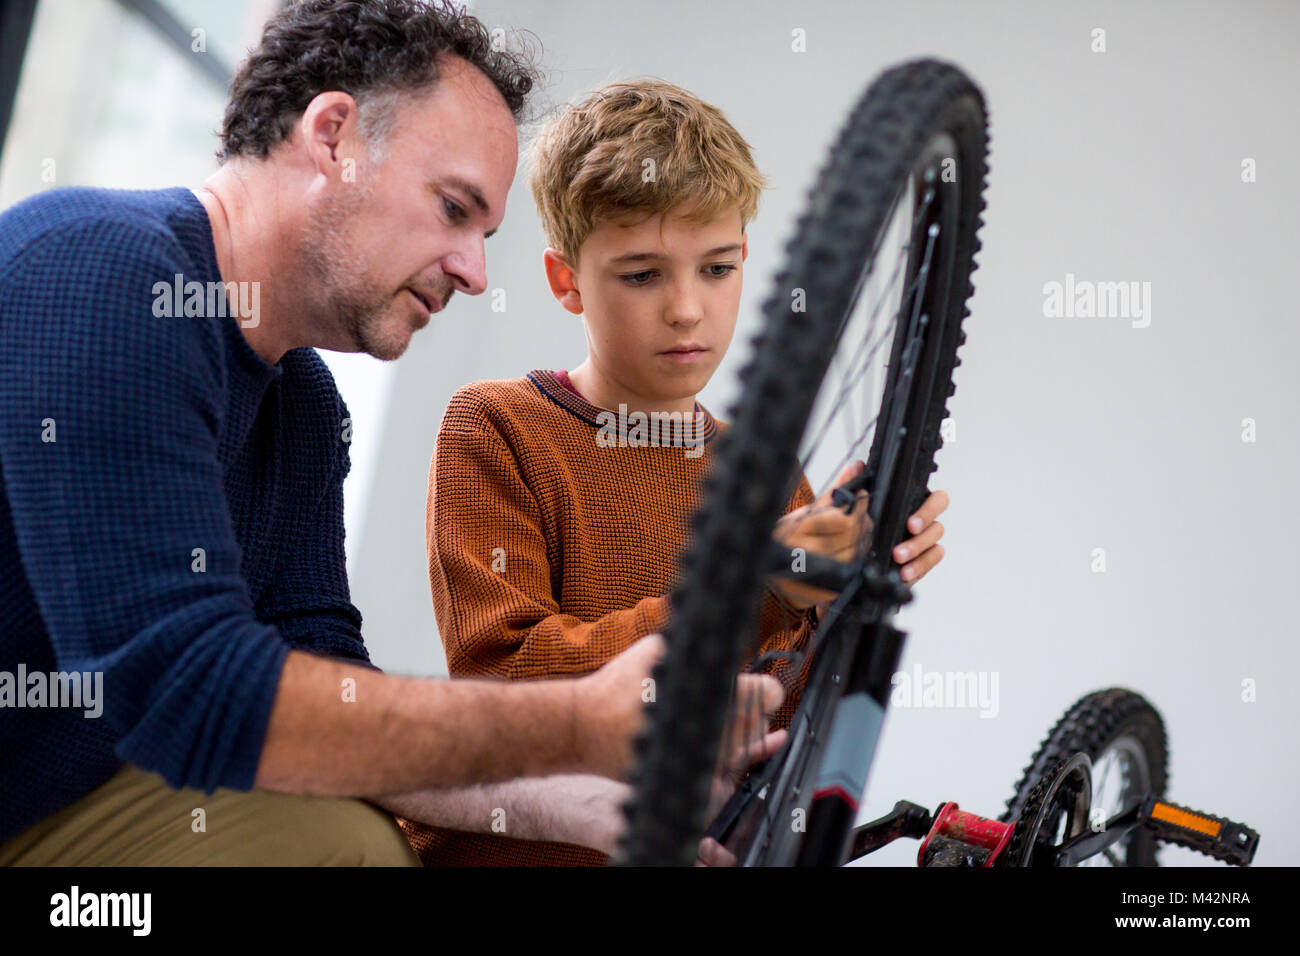 Boy fixing bike with his Dad - Stock Image